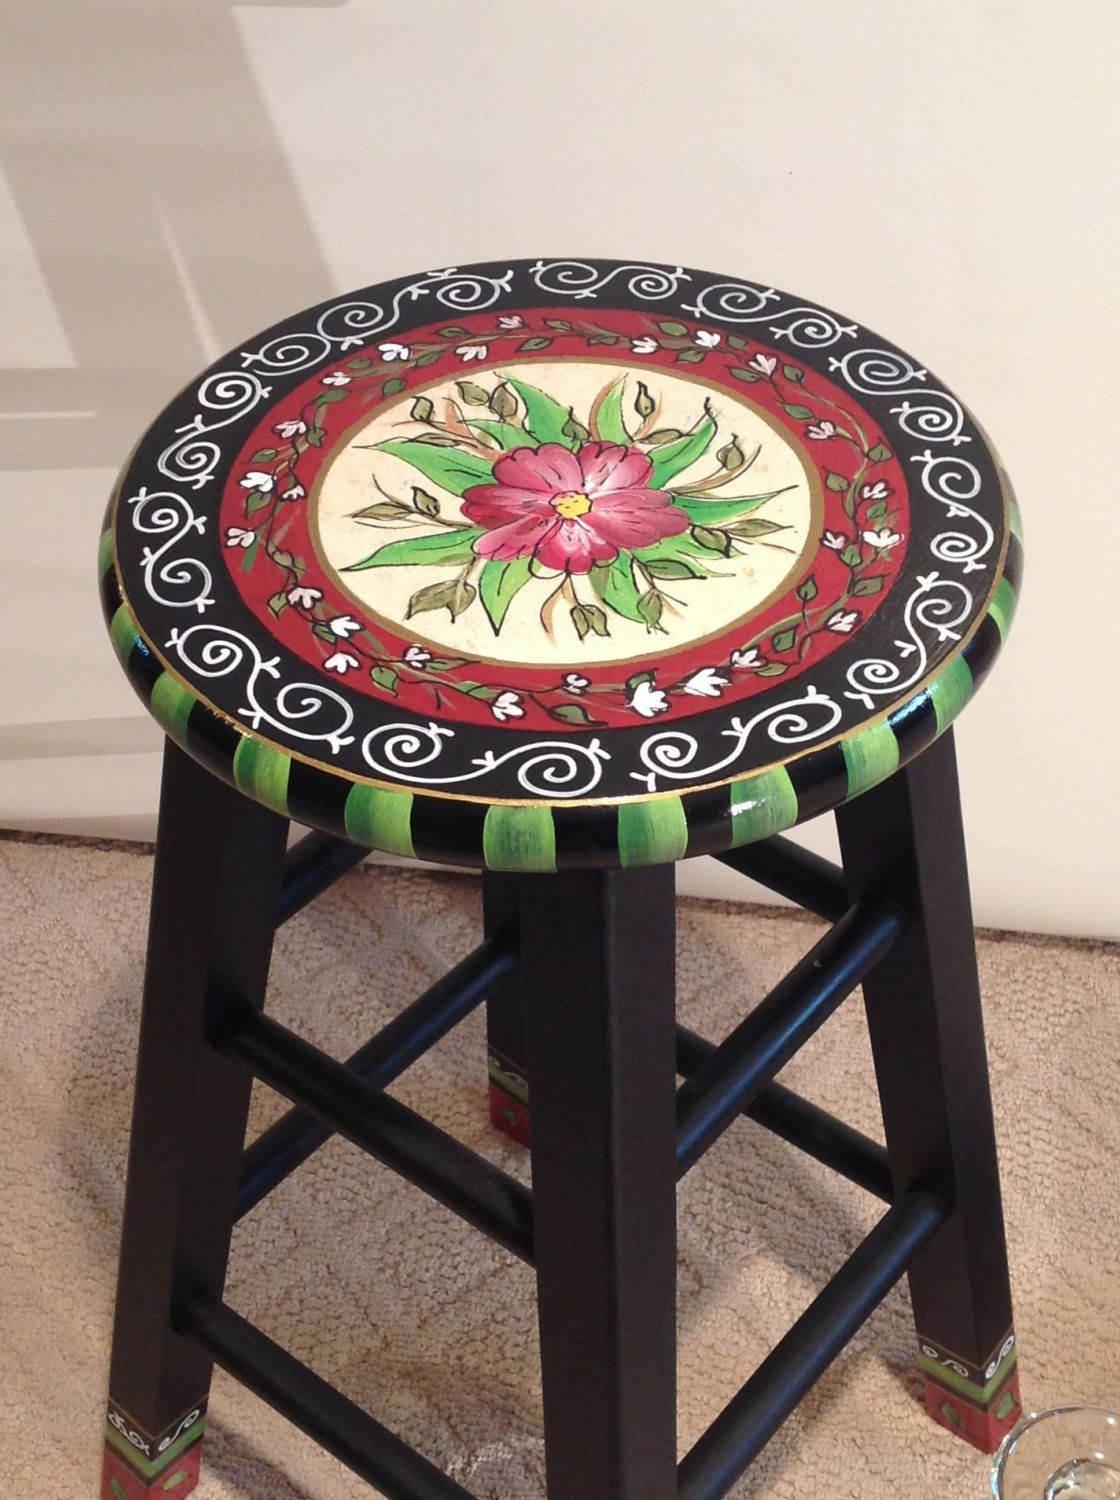 Whimsical Painted Furniture Painted Bar Stool 24 Or Etsy Whimsical Painted Furniture Whimsical Furniture Painted Furniture